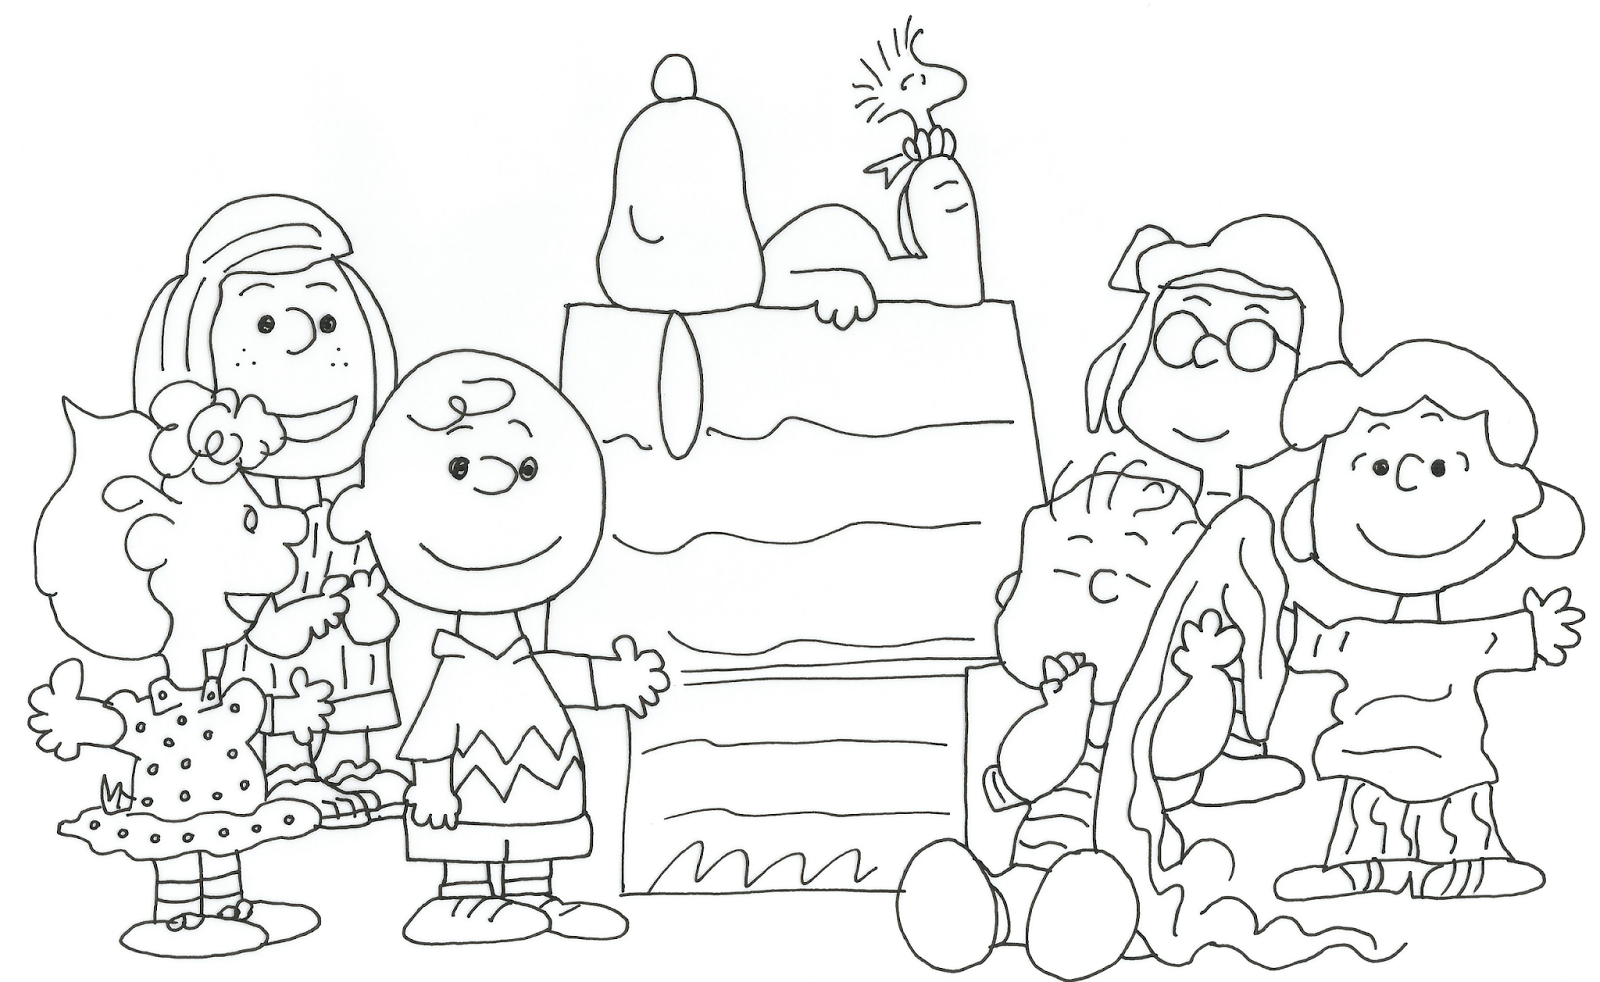 penuts coloring pages - photo#25